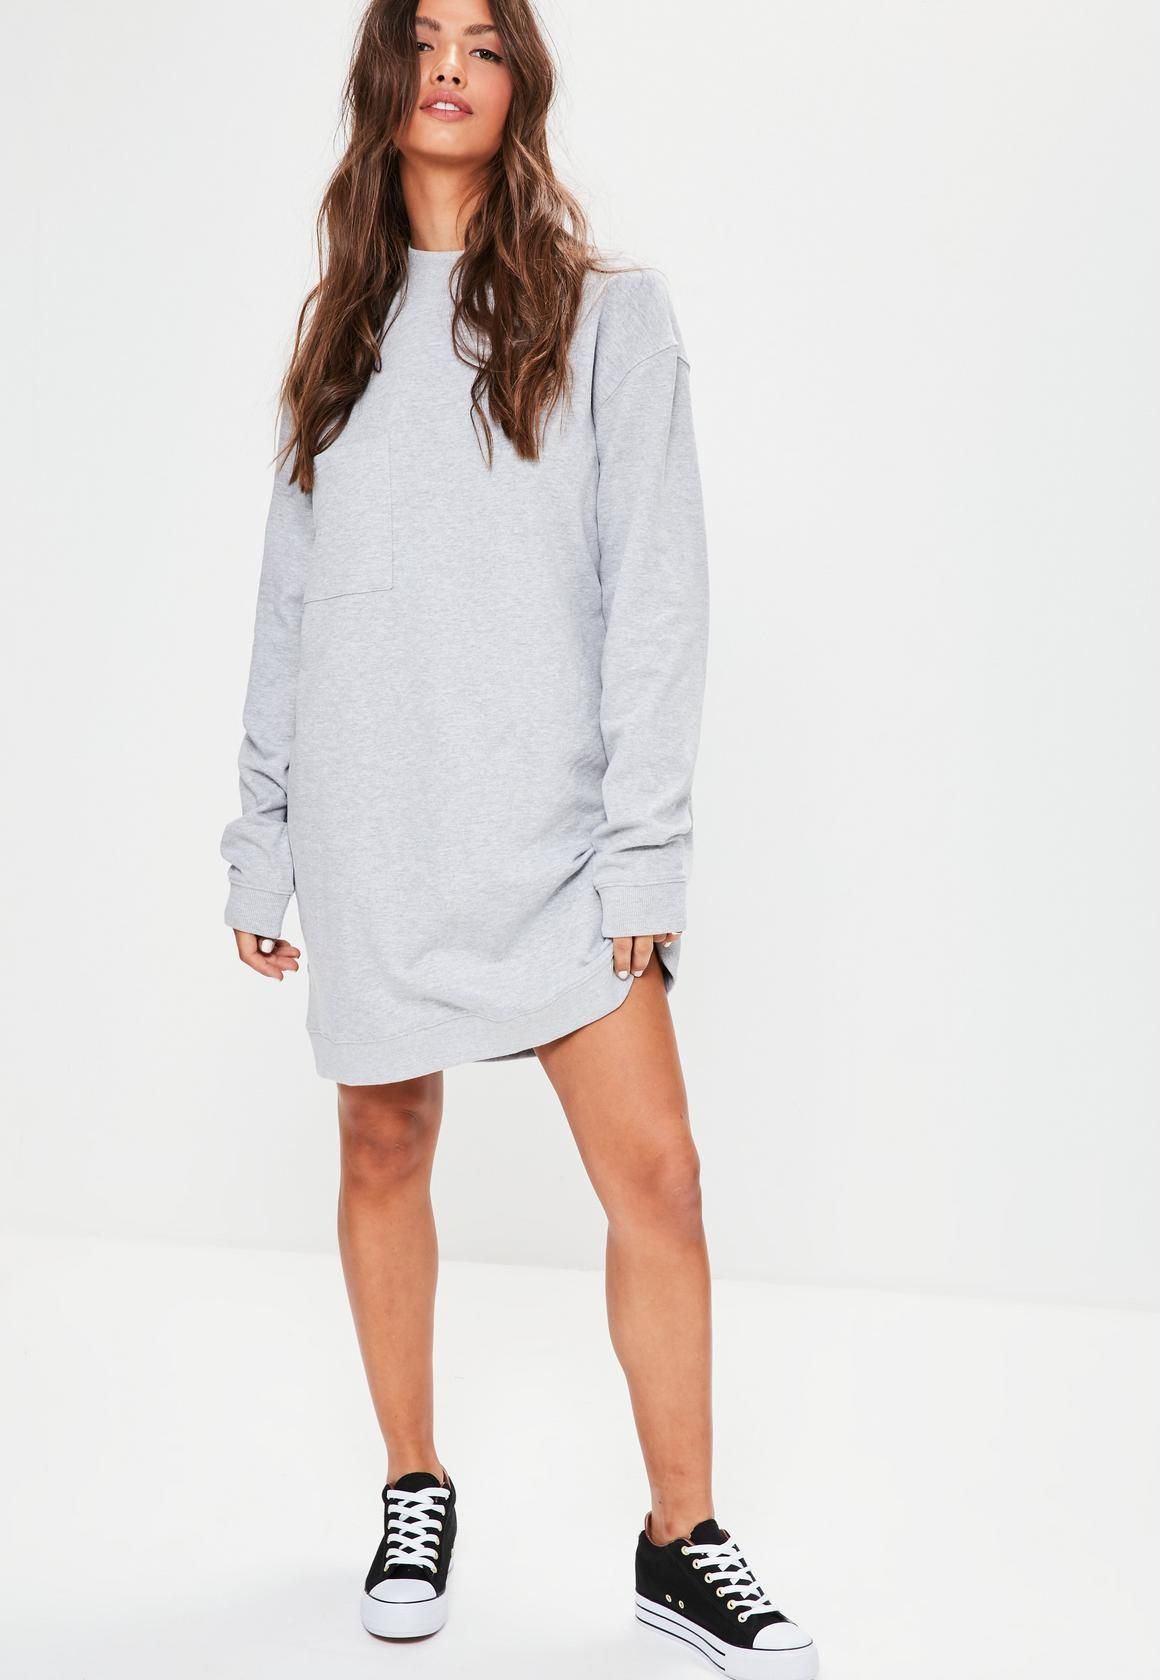 Missguided - Grey Oversized Pocket High Neck Sweater Dress ...